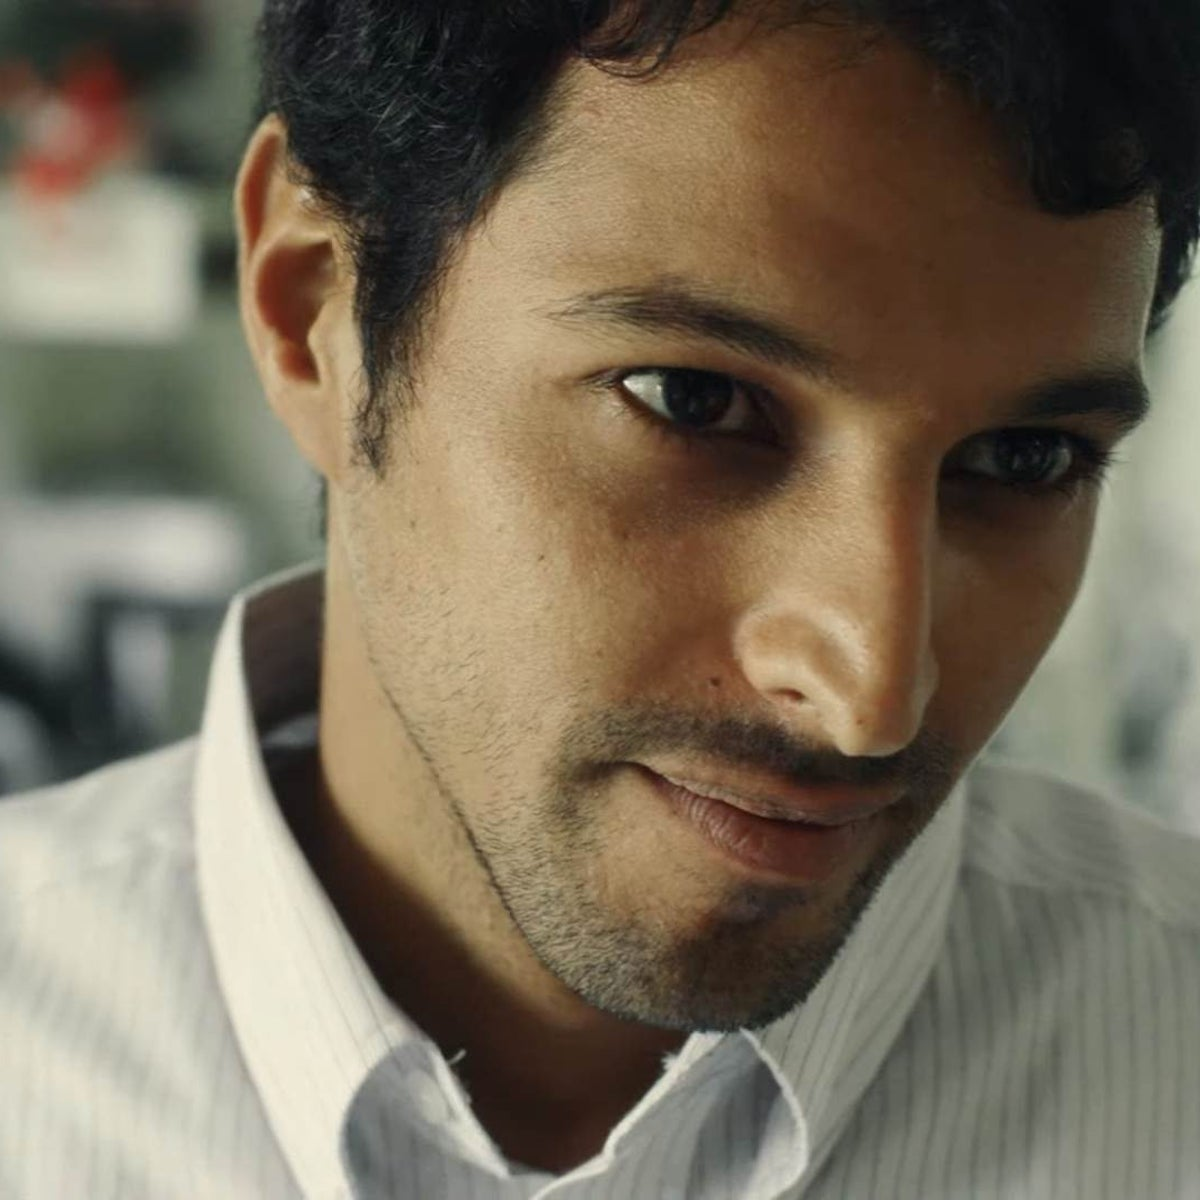 Amir, portrayed well by Yehuda Nahari Halevi (pictured), is a law student, who participates with his friends in stormy demonstrations against the Oslo Accords.